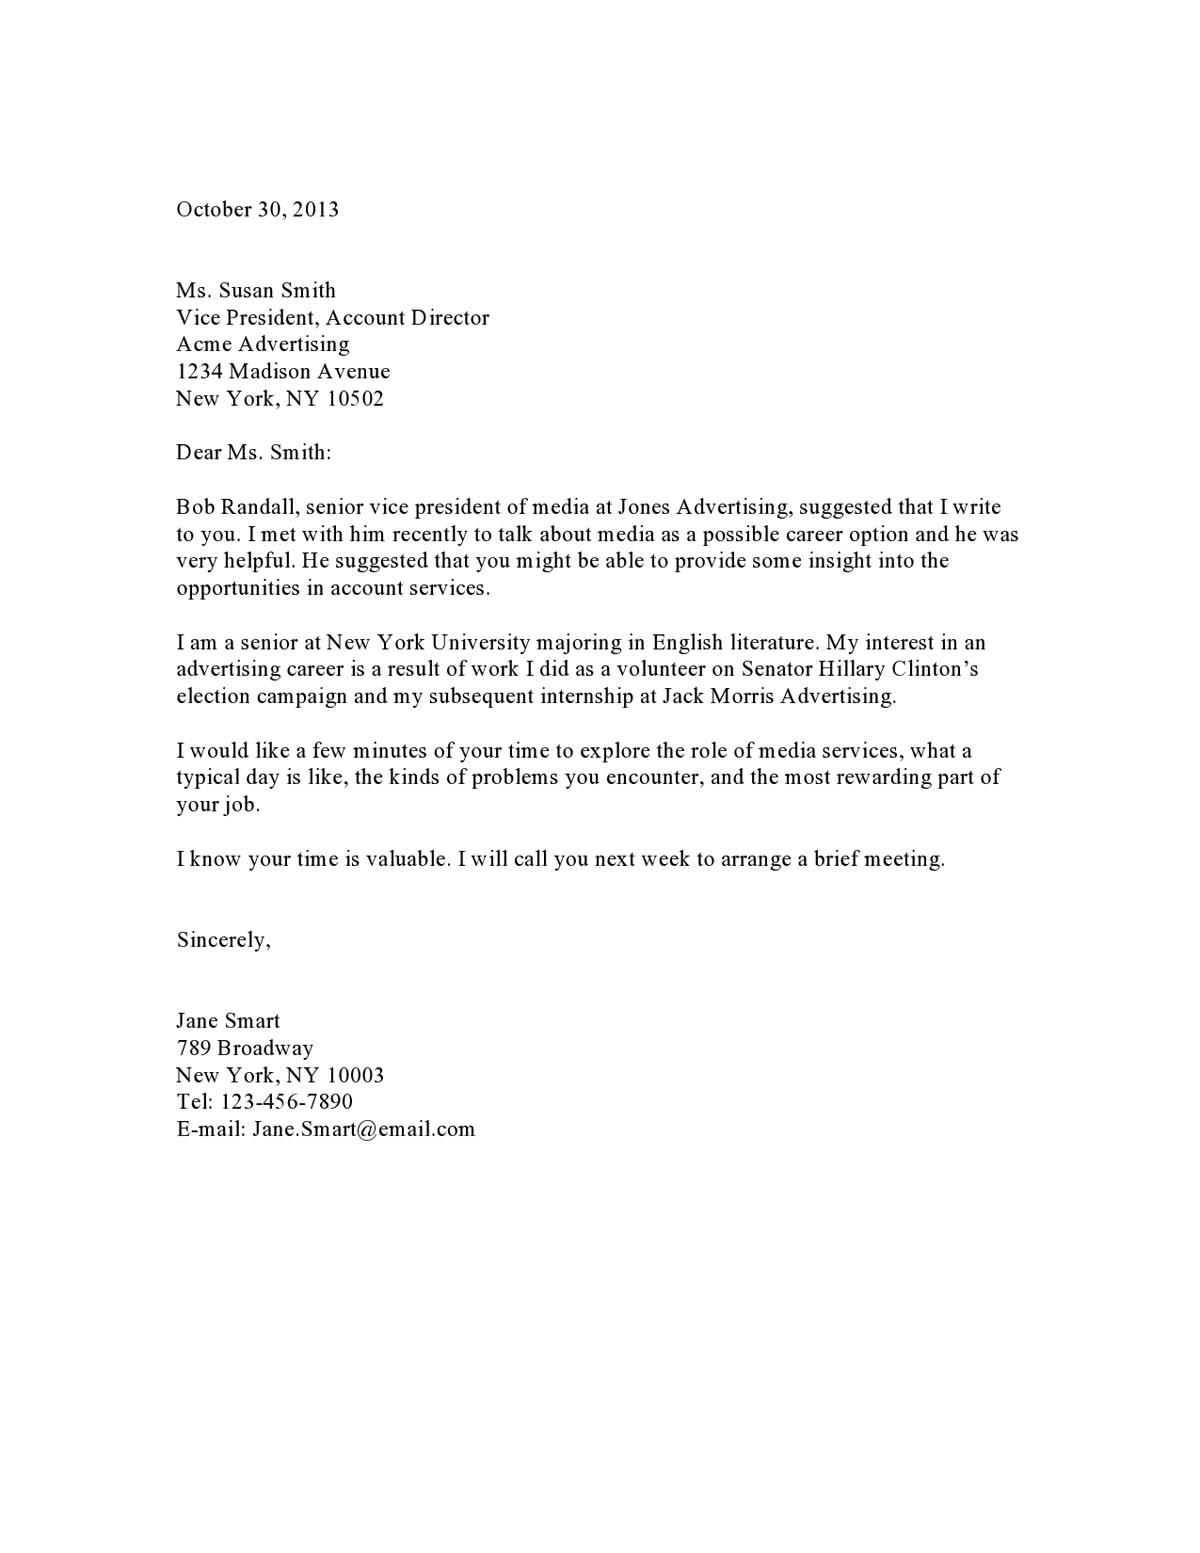 Sample cover letter for applying a job for Great short cover letters